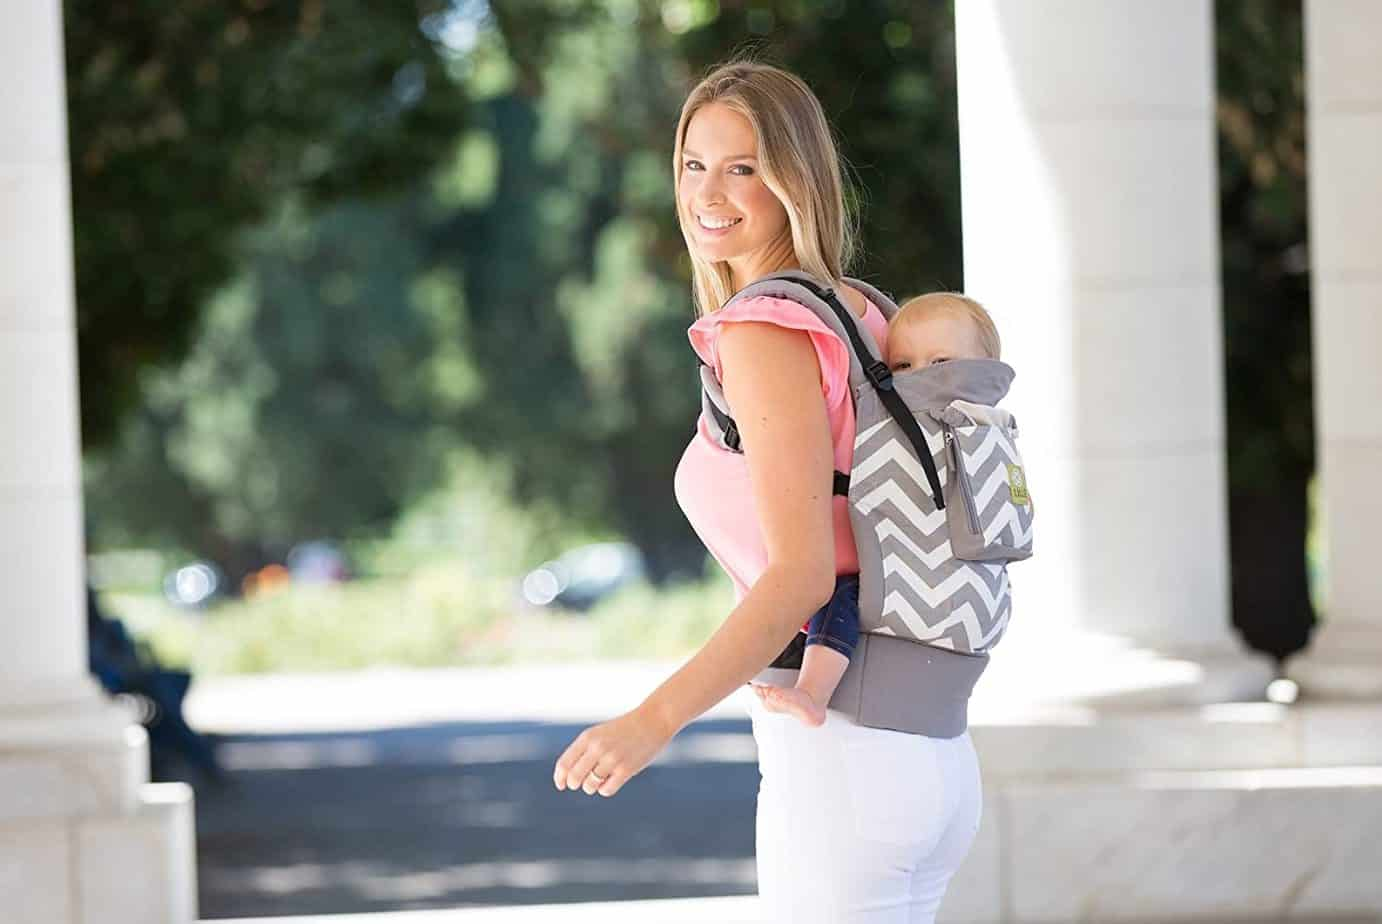 lilebaby 4 in 1 carrier